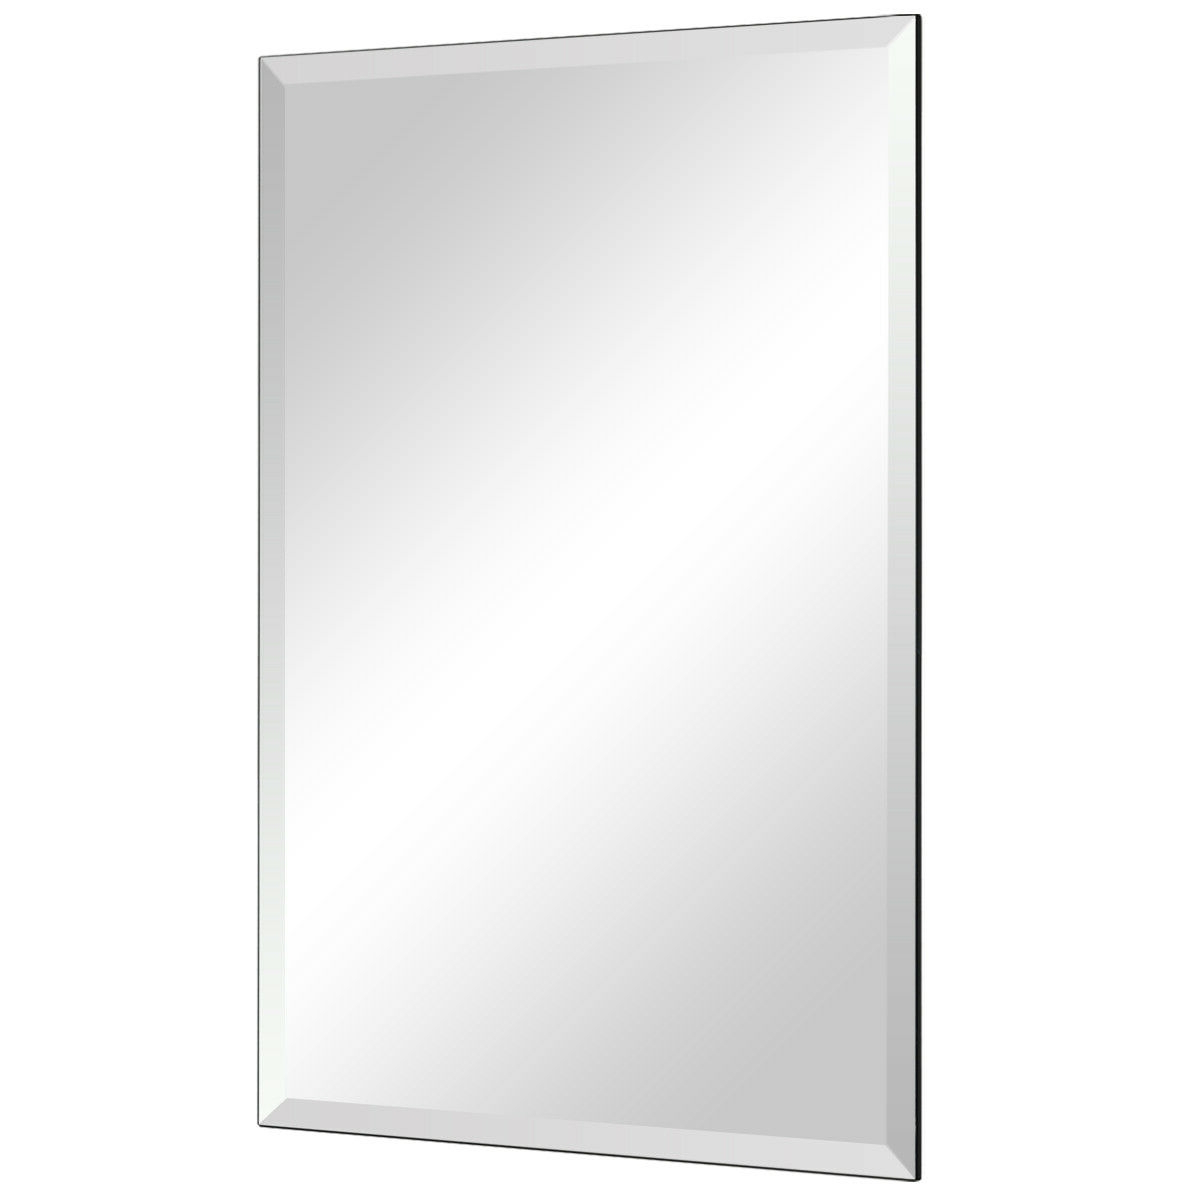 "Well Liked 24"" X 36"" Rectangle Wall Mounted Bathroom Beveled Mirror For 24 X 36 Wall Mirrors (View 20 of 20)"